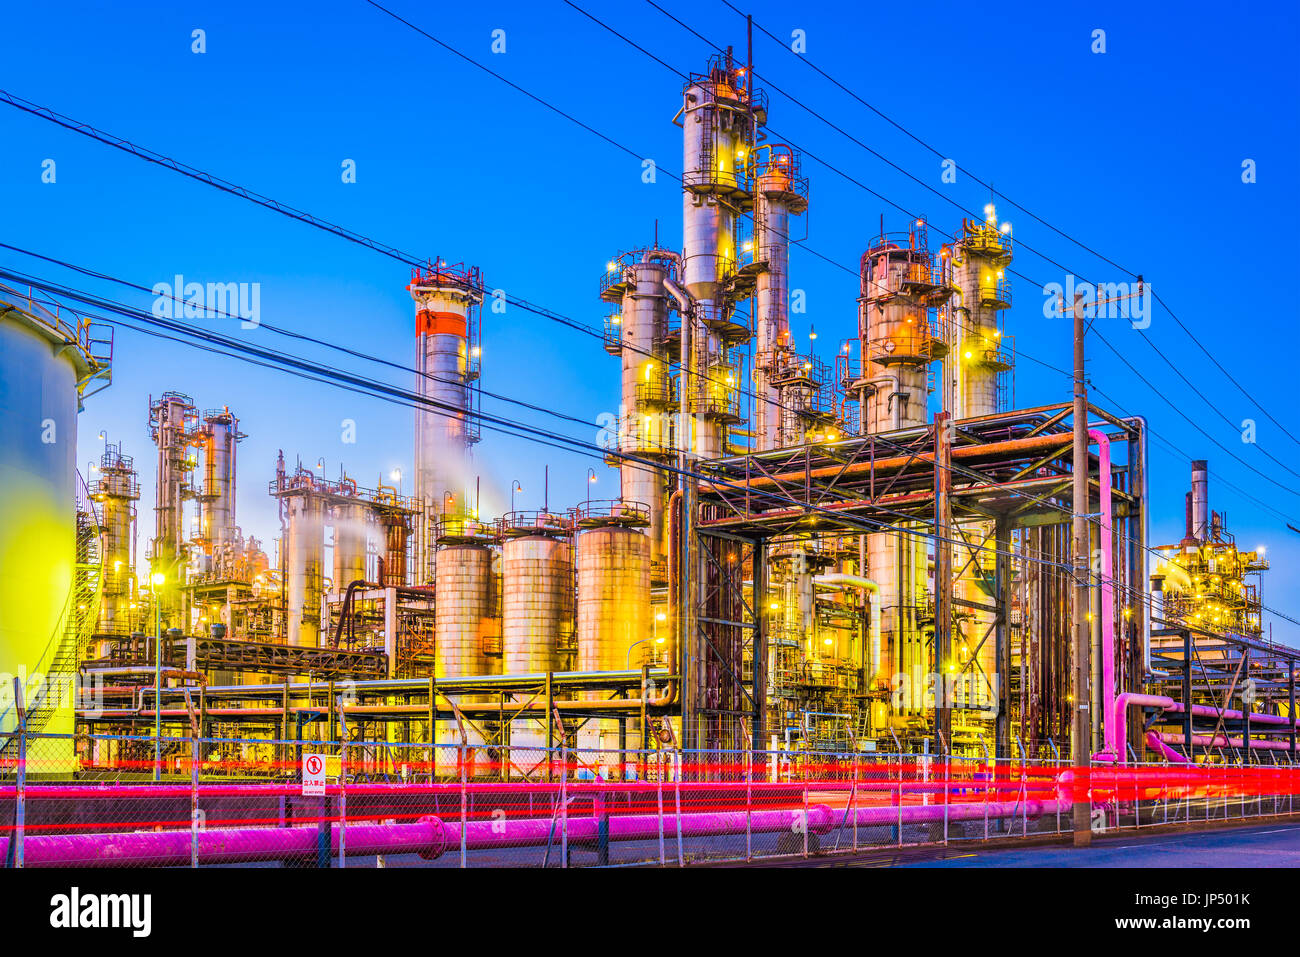 Factories at twilight in Japan. - Stock Image